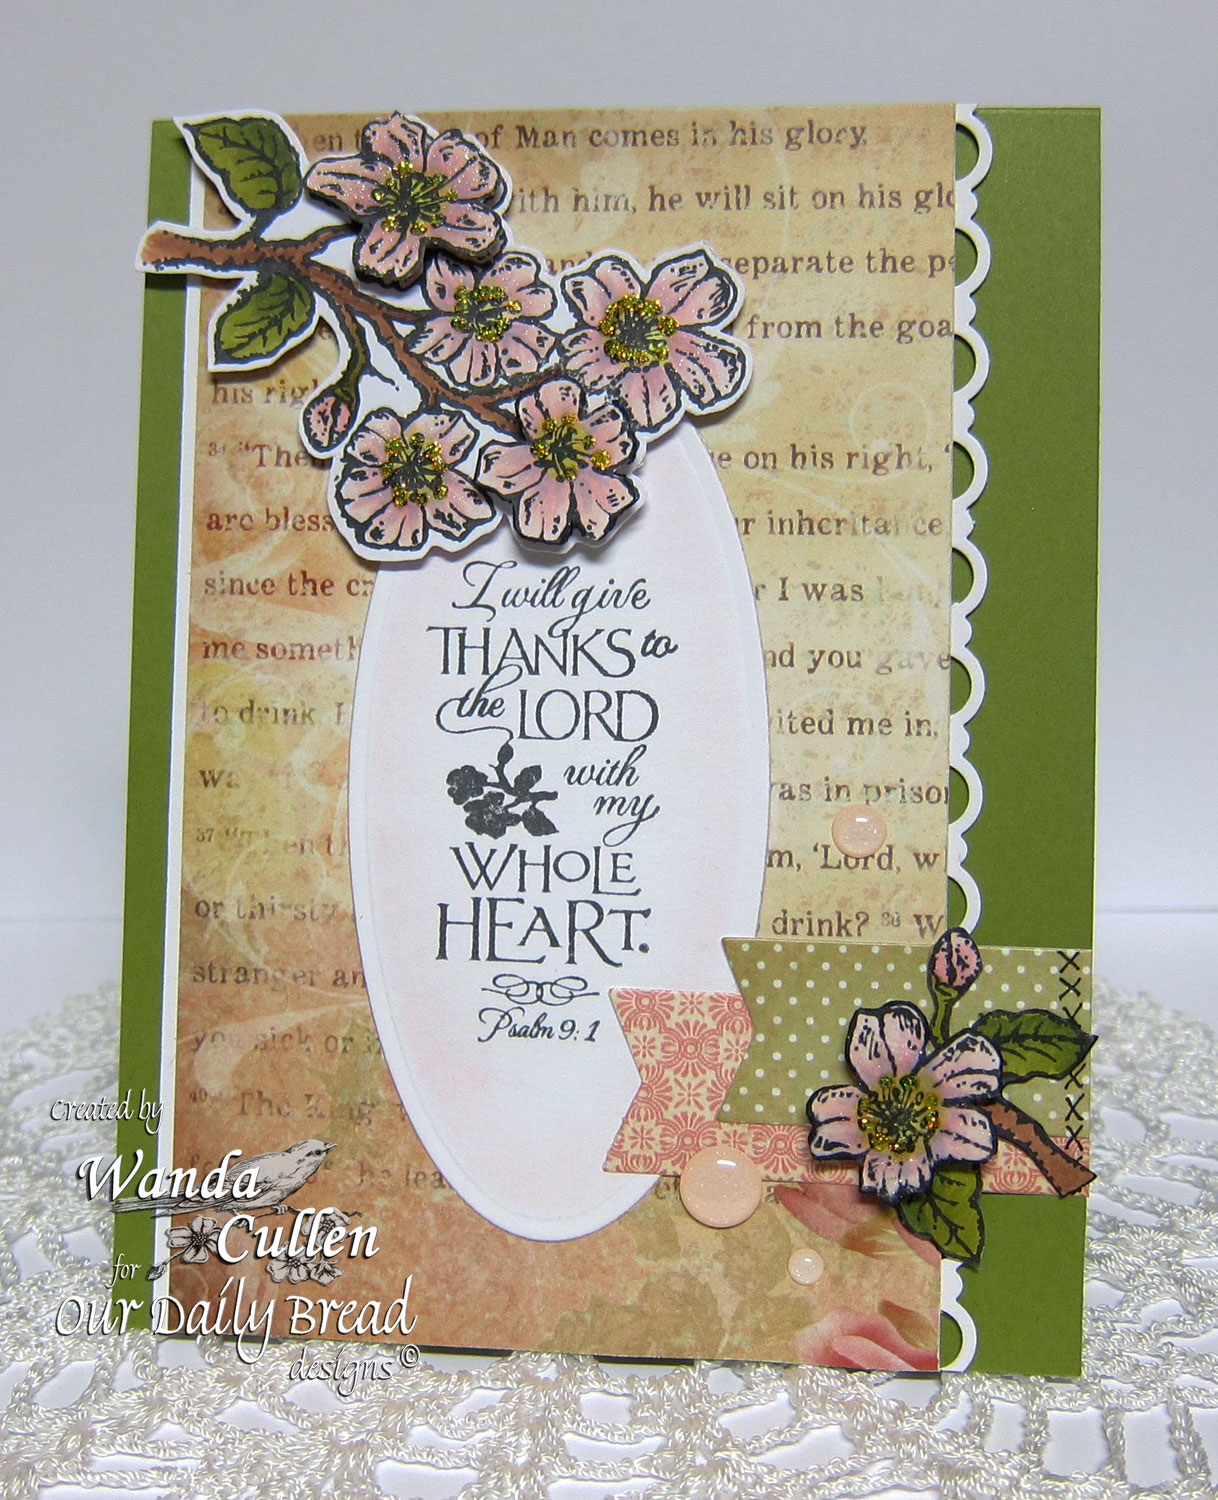 Stamps - Our Daily Bread Designs Cherry Blossom, ODBD Custom Beautiful Borders Dies, ODBD Blushing Rose Paper Collection